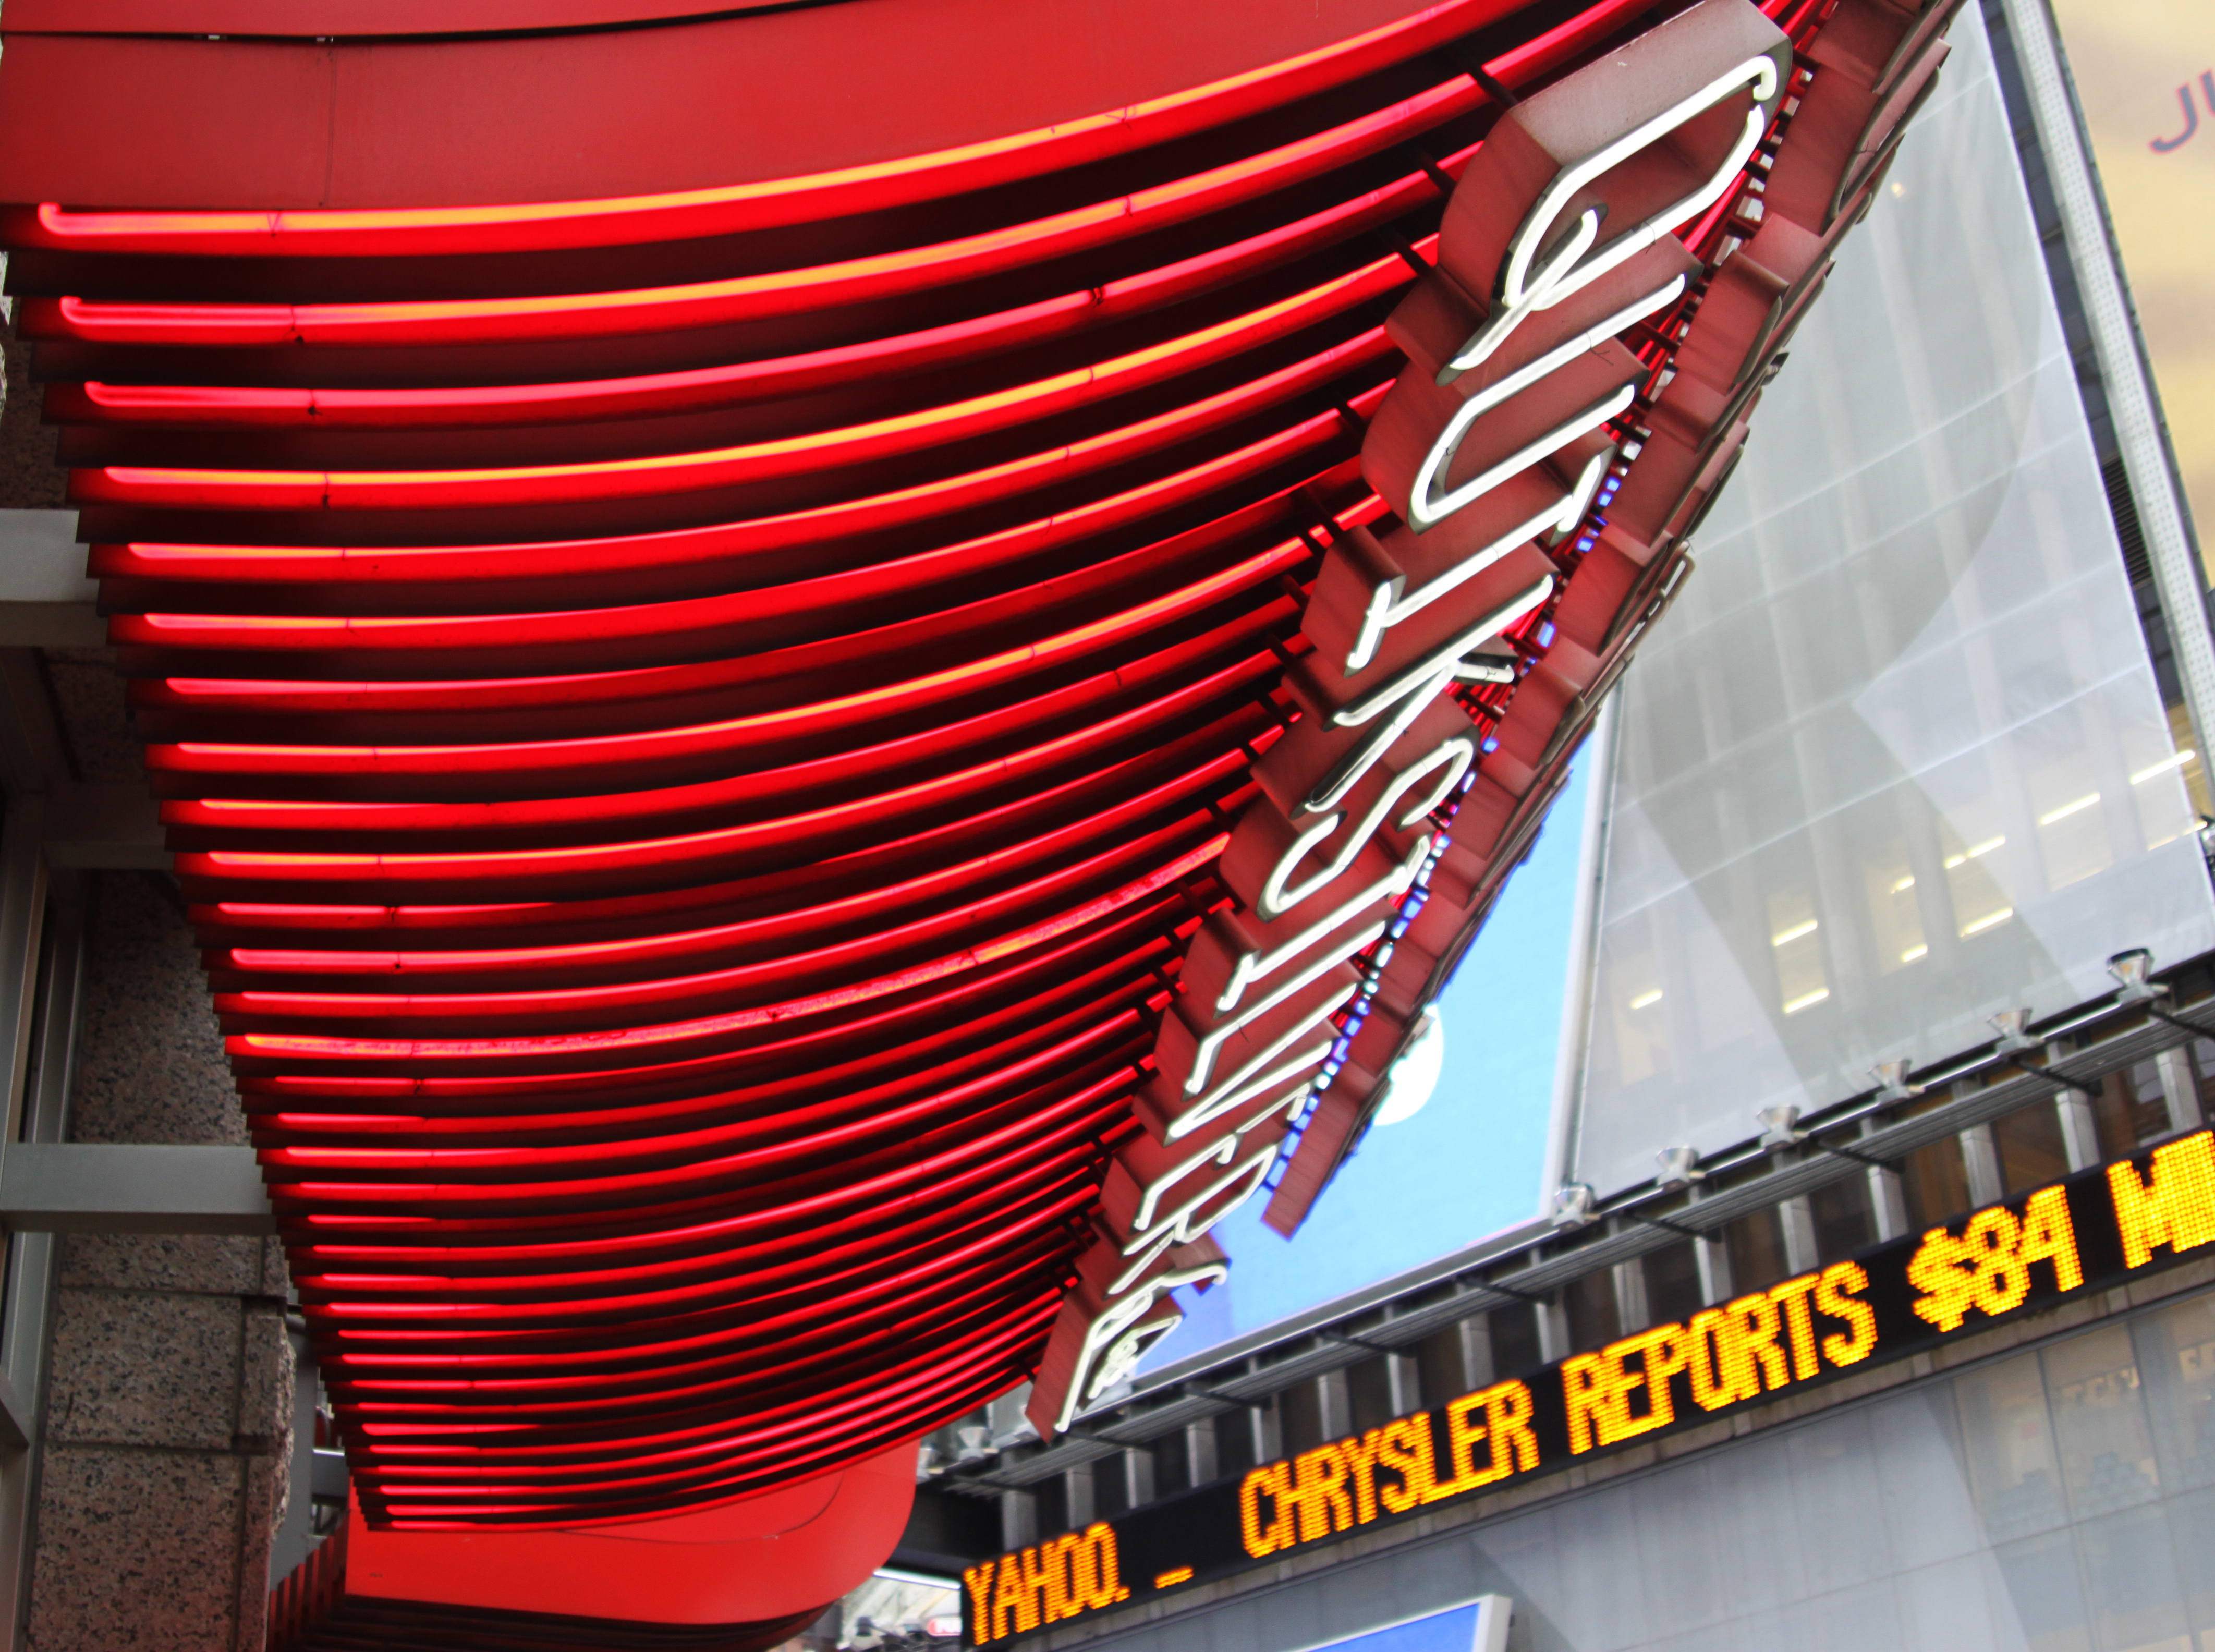 Signs converge on 7th Avenue in Times Square